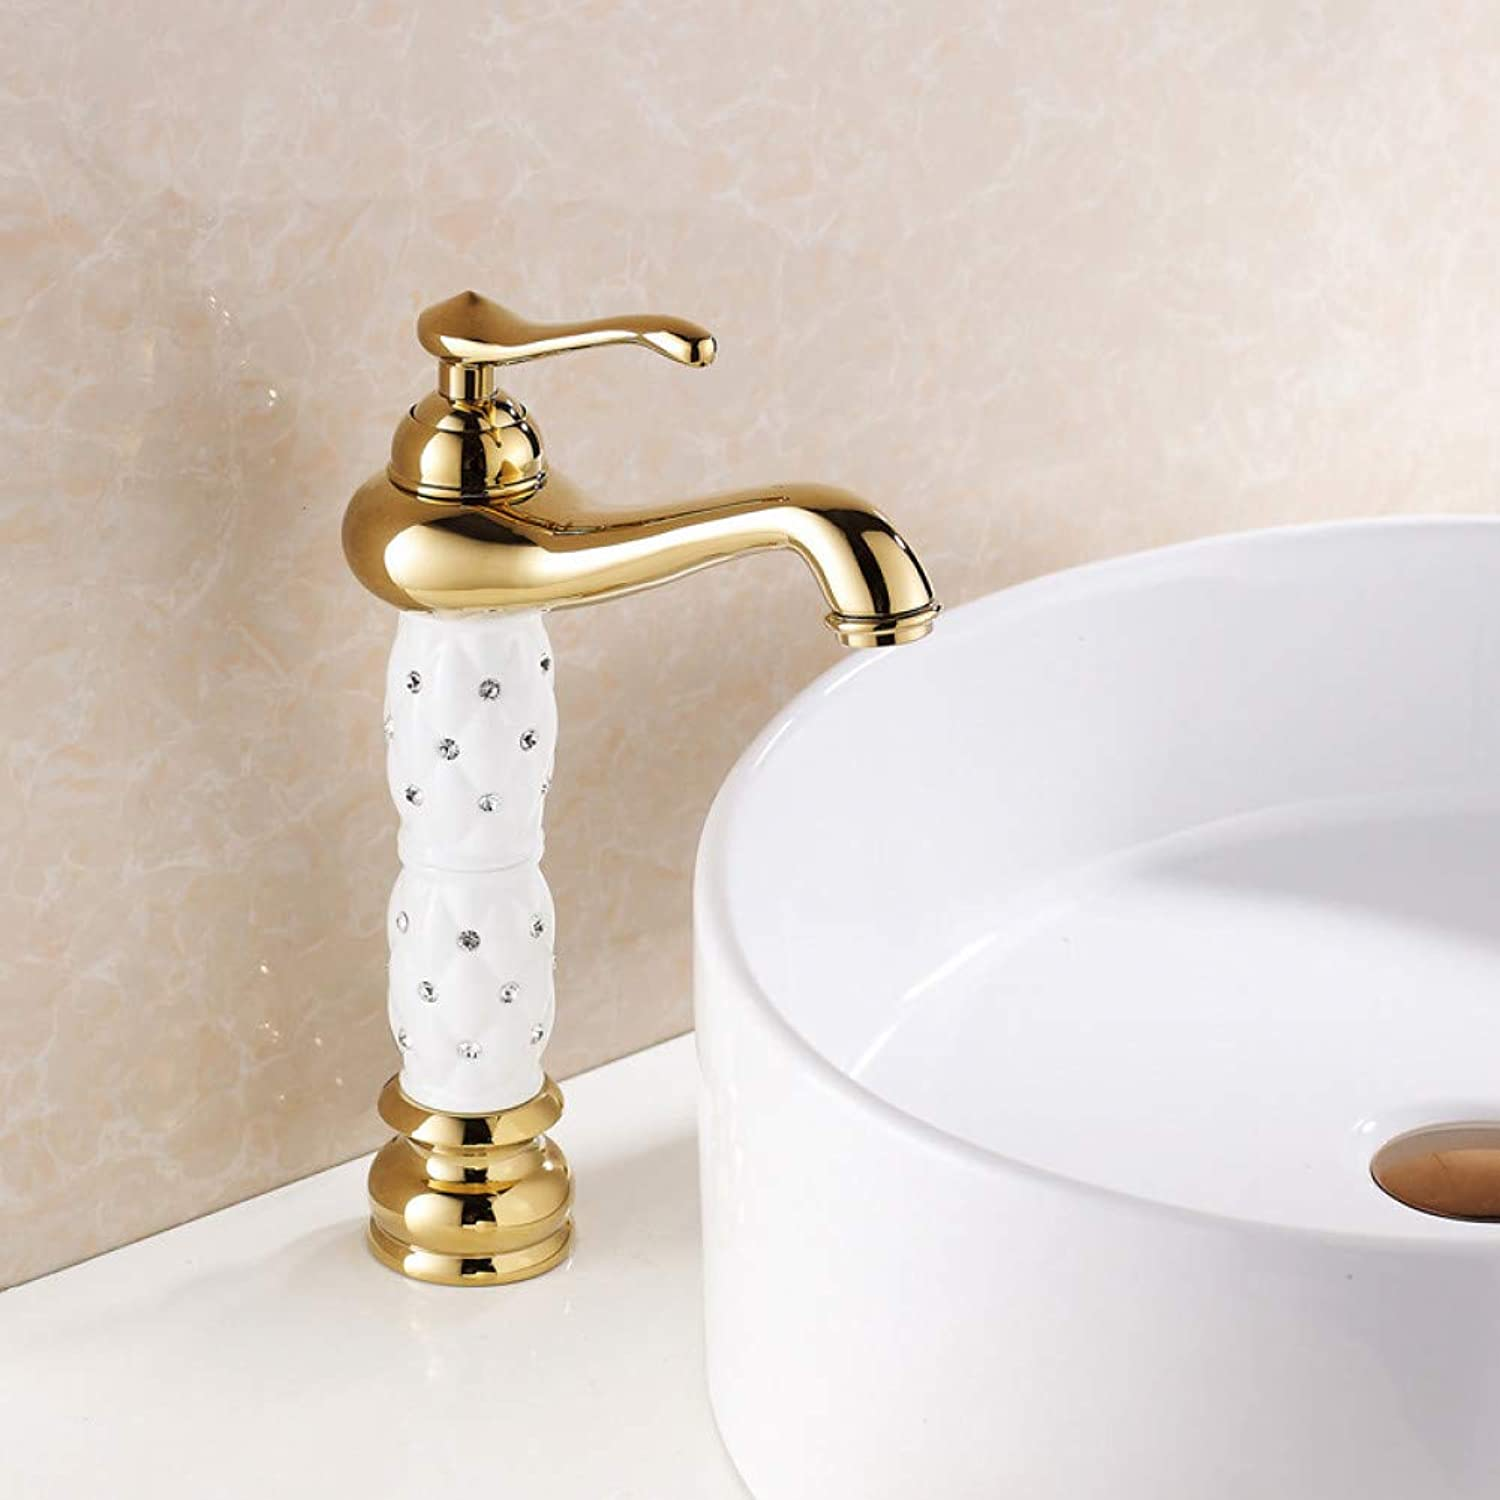 YHSGY Bathroom Sink Taps High-Grade gold Faucet Black-Studded Above Counter Basin Faucet Basin Hot and Cold Faucet